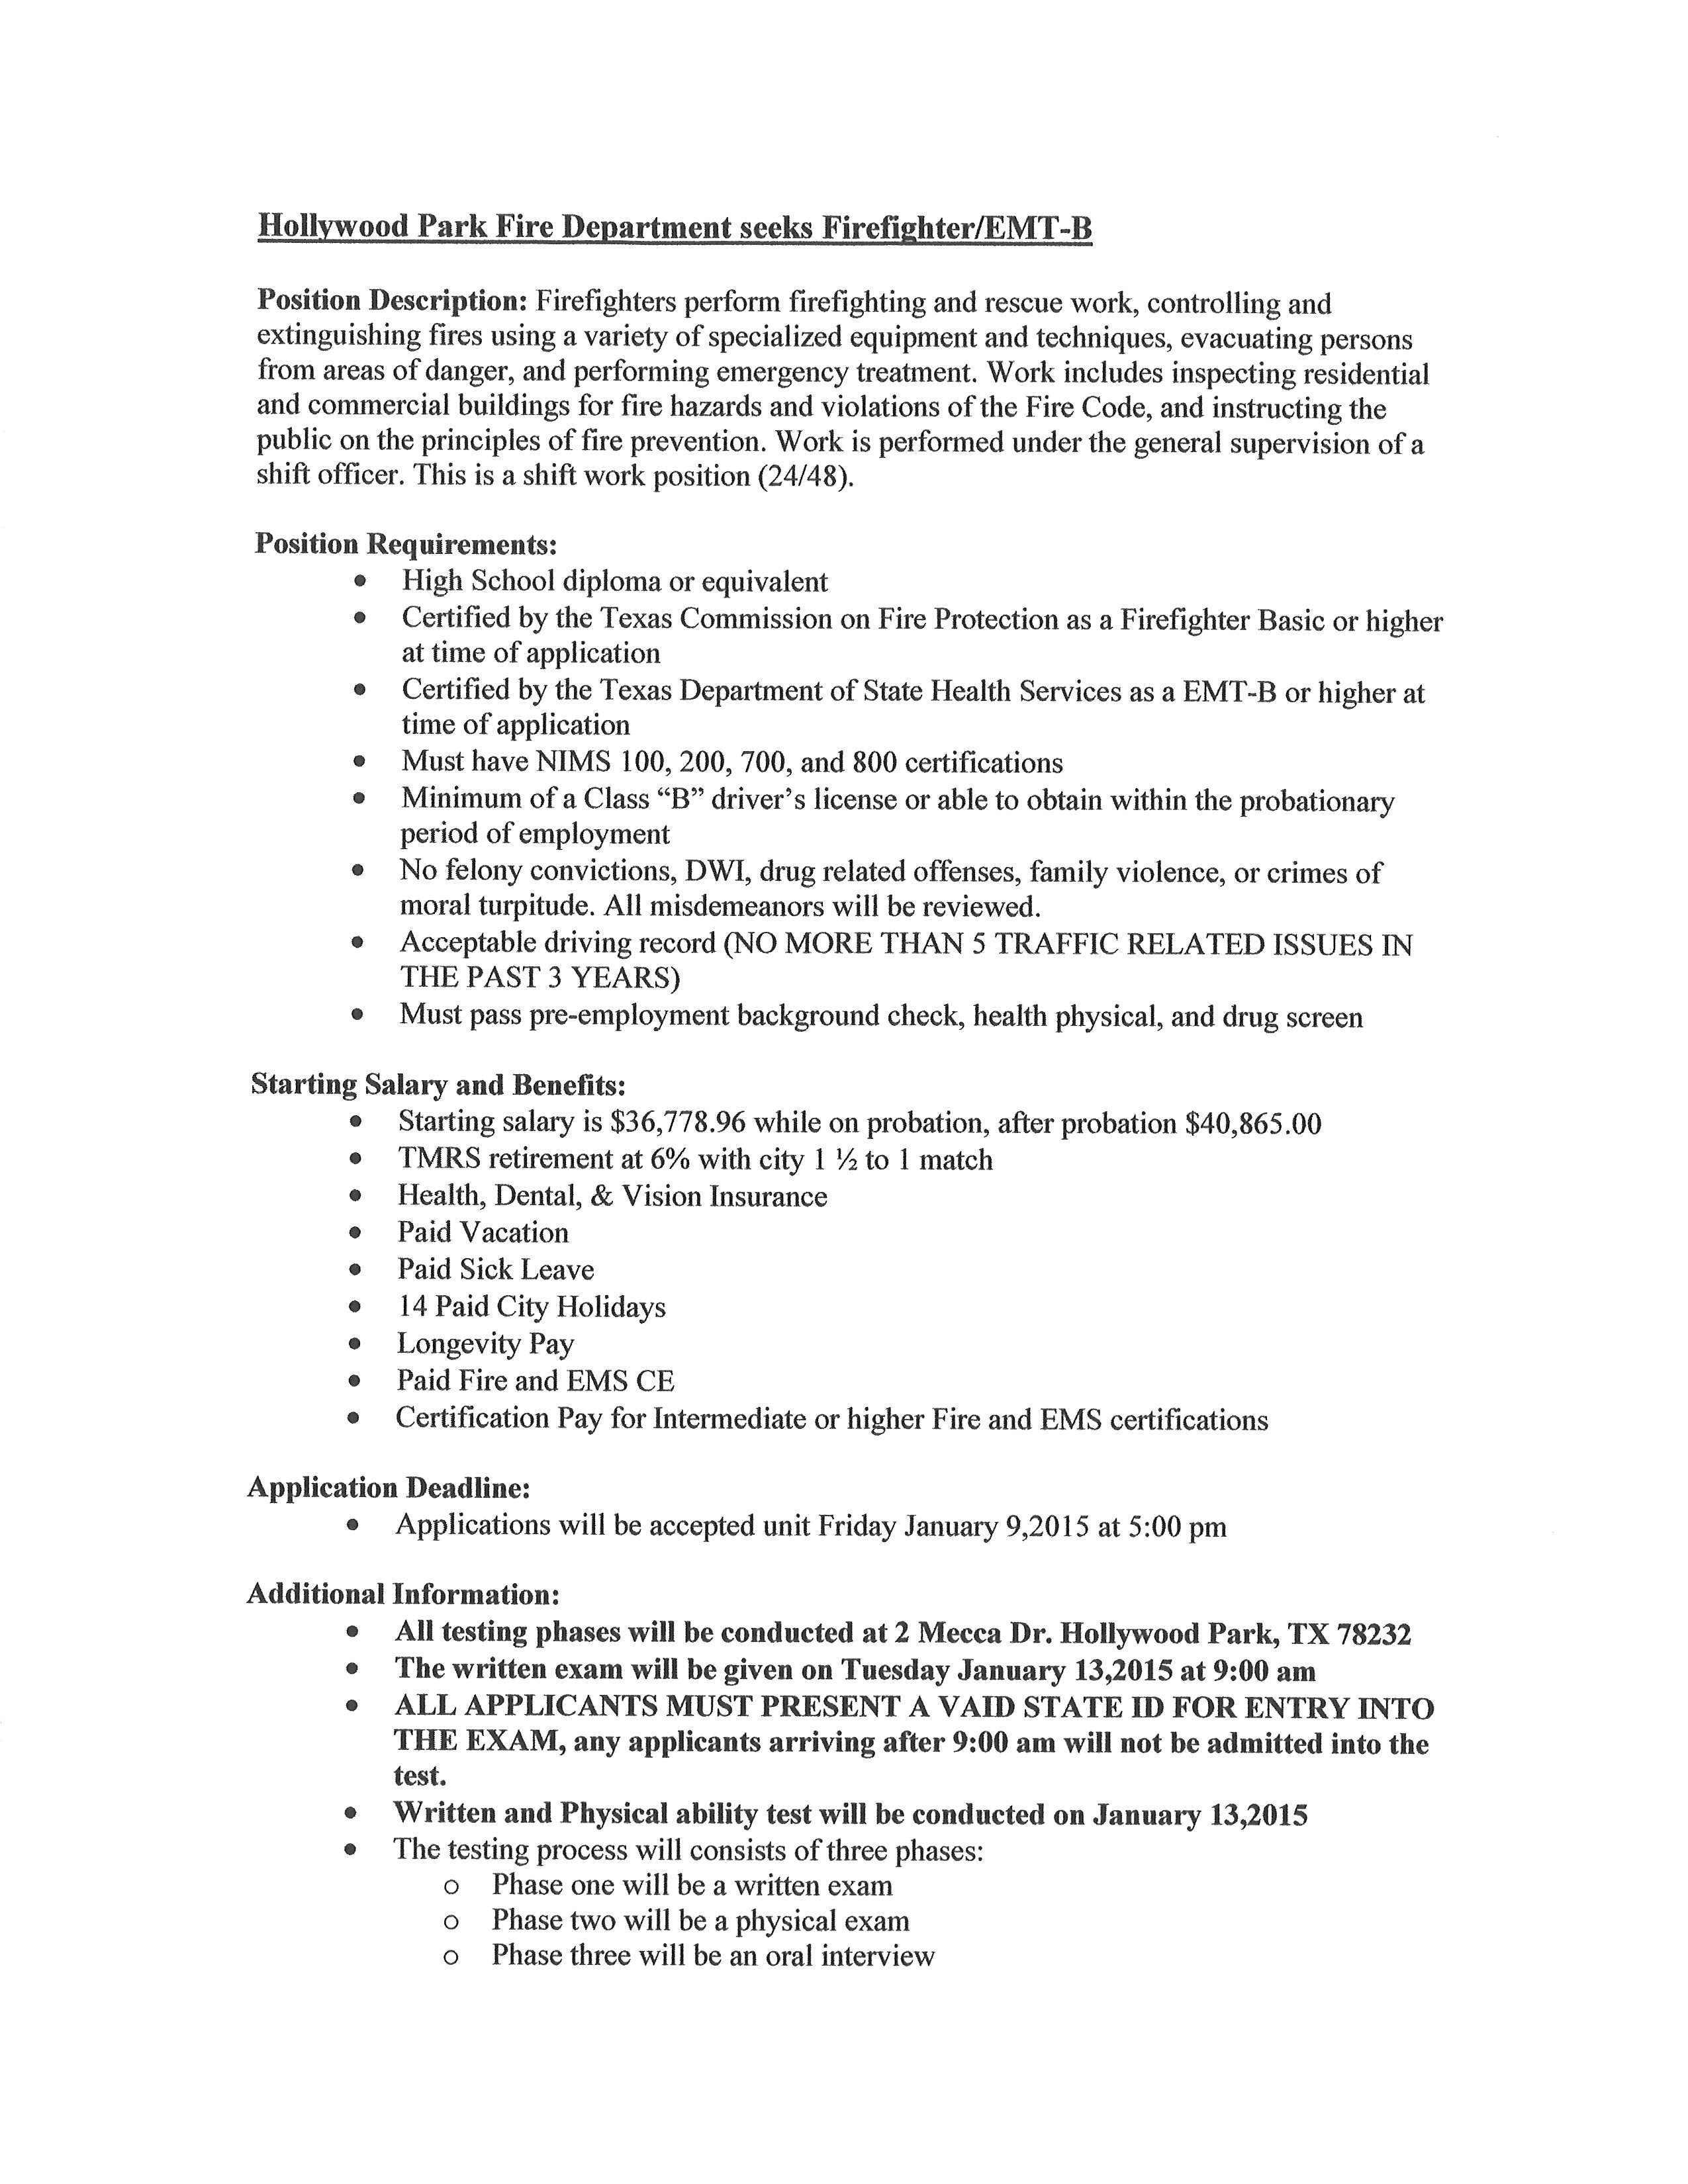 Government Jobs Upload Resume Employment Town Of Hollywood Park The Official Website